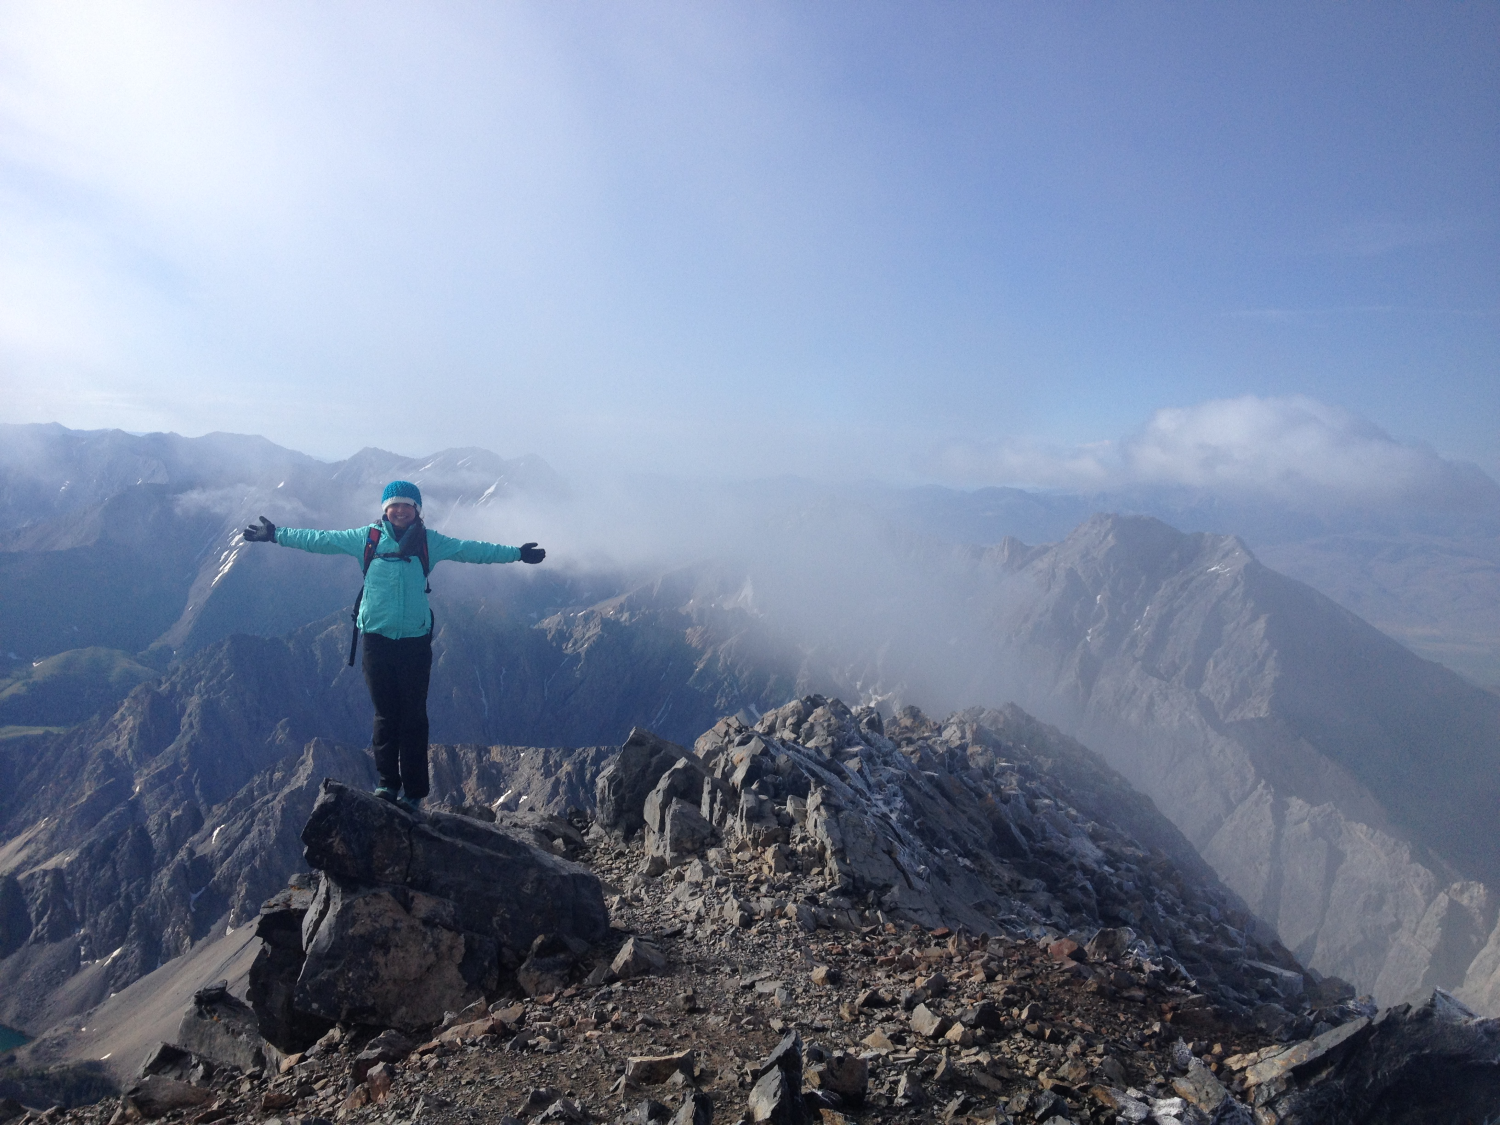 A student climbed to the highest mountain of the UK in 13 cm heels 86